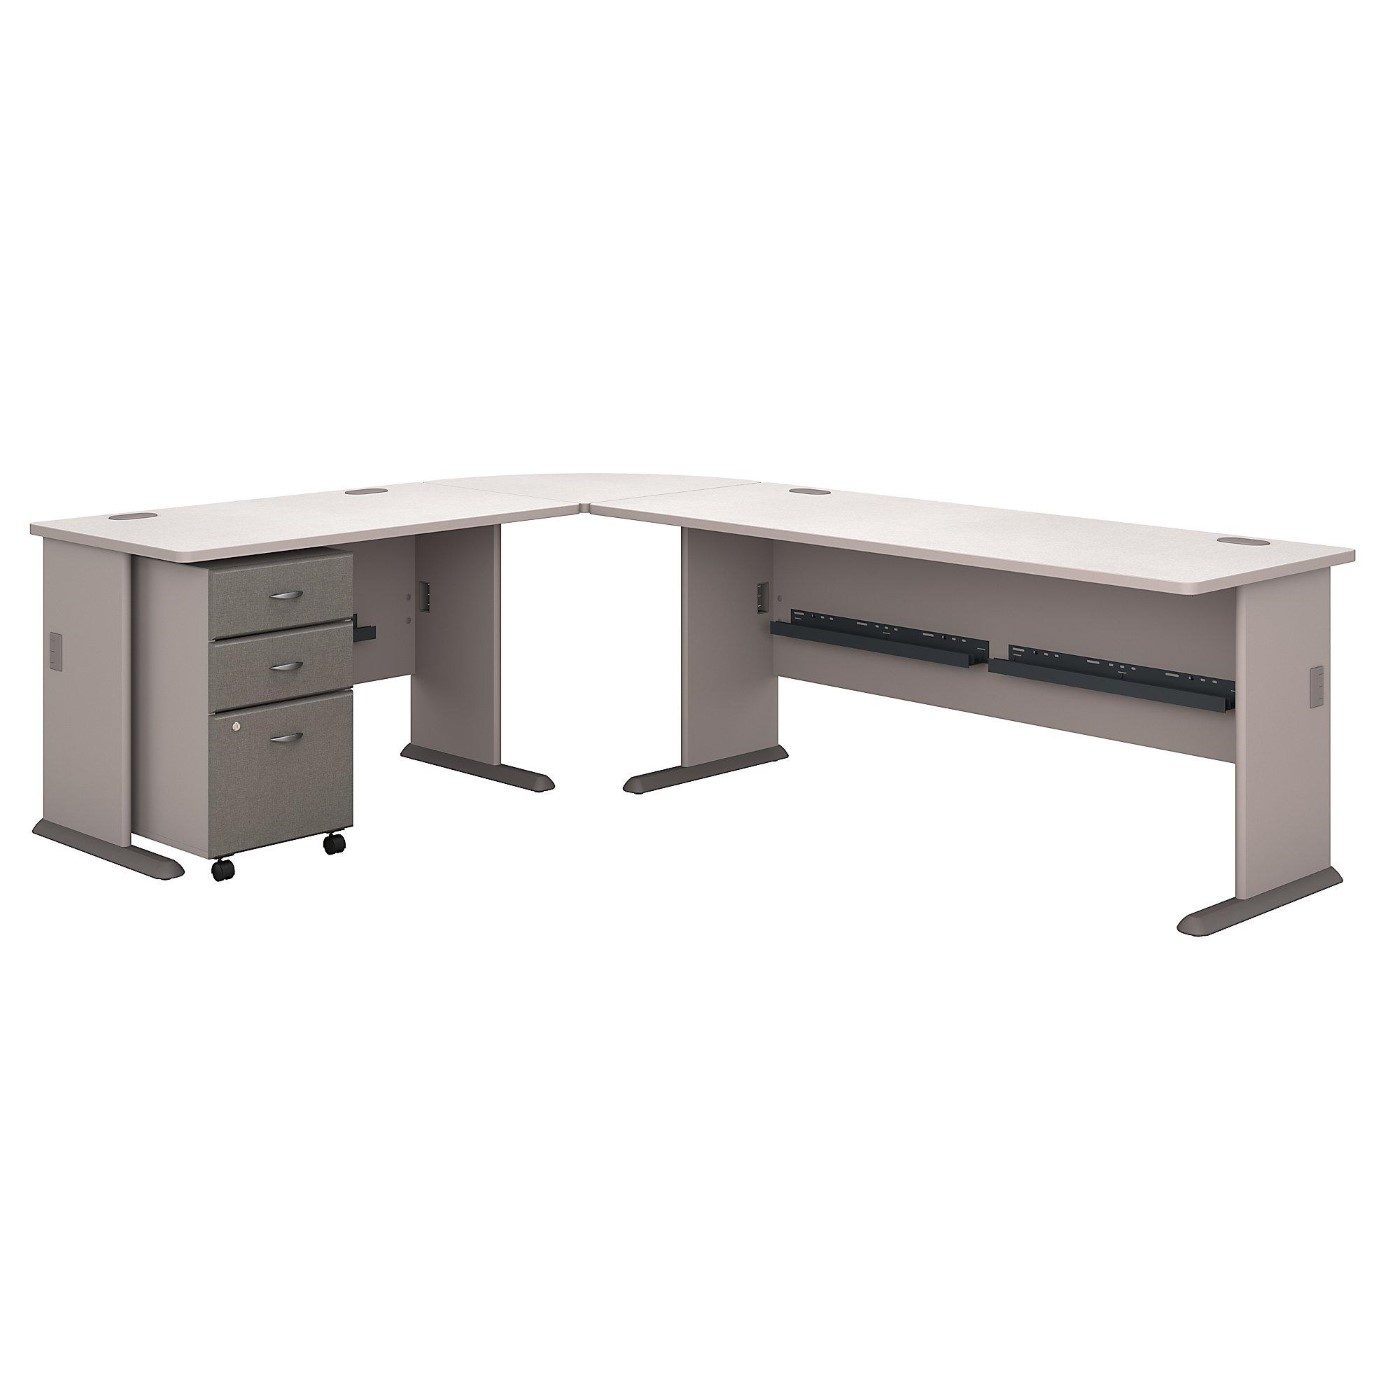 BUSH BUSINESS FURNITURE SERIES A 99W X 75D L SHAPED DESK WITH MOBILE FILE CABINET. FREE SHIPPING.